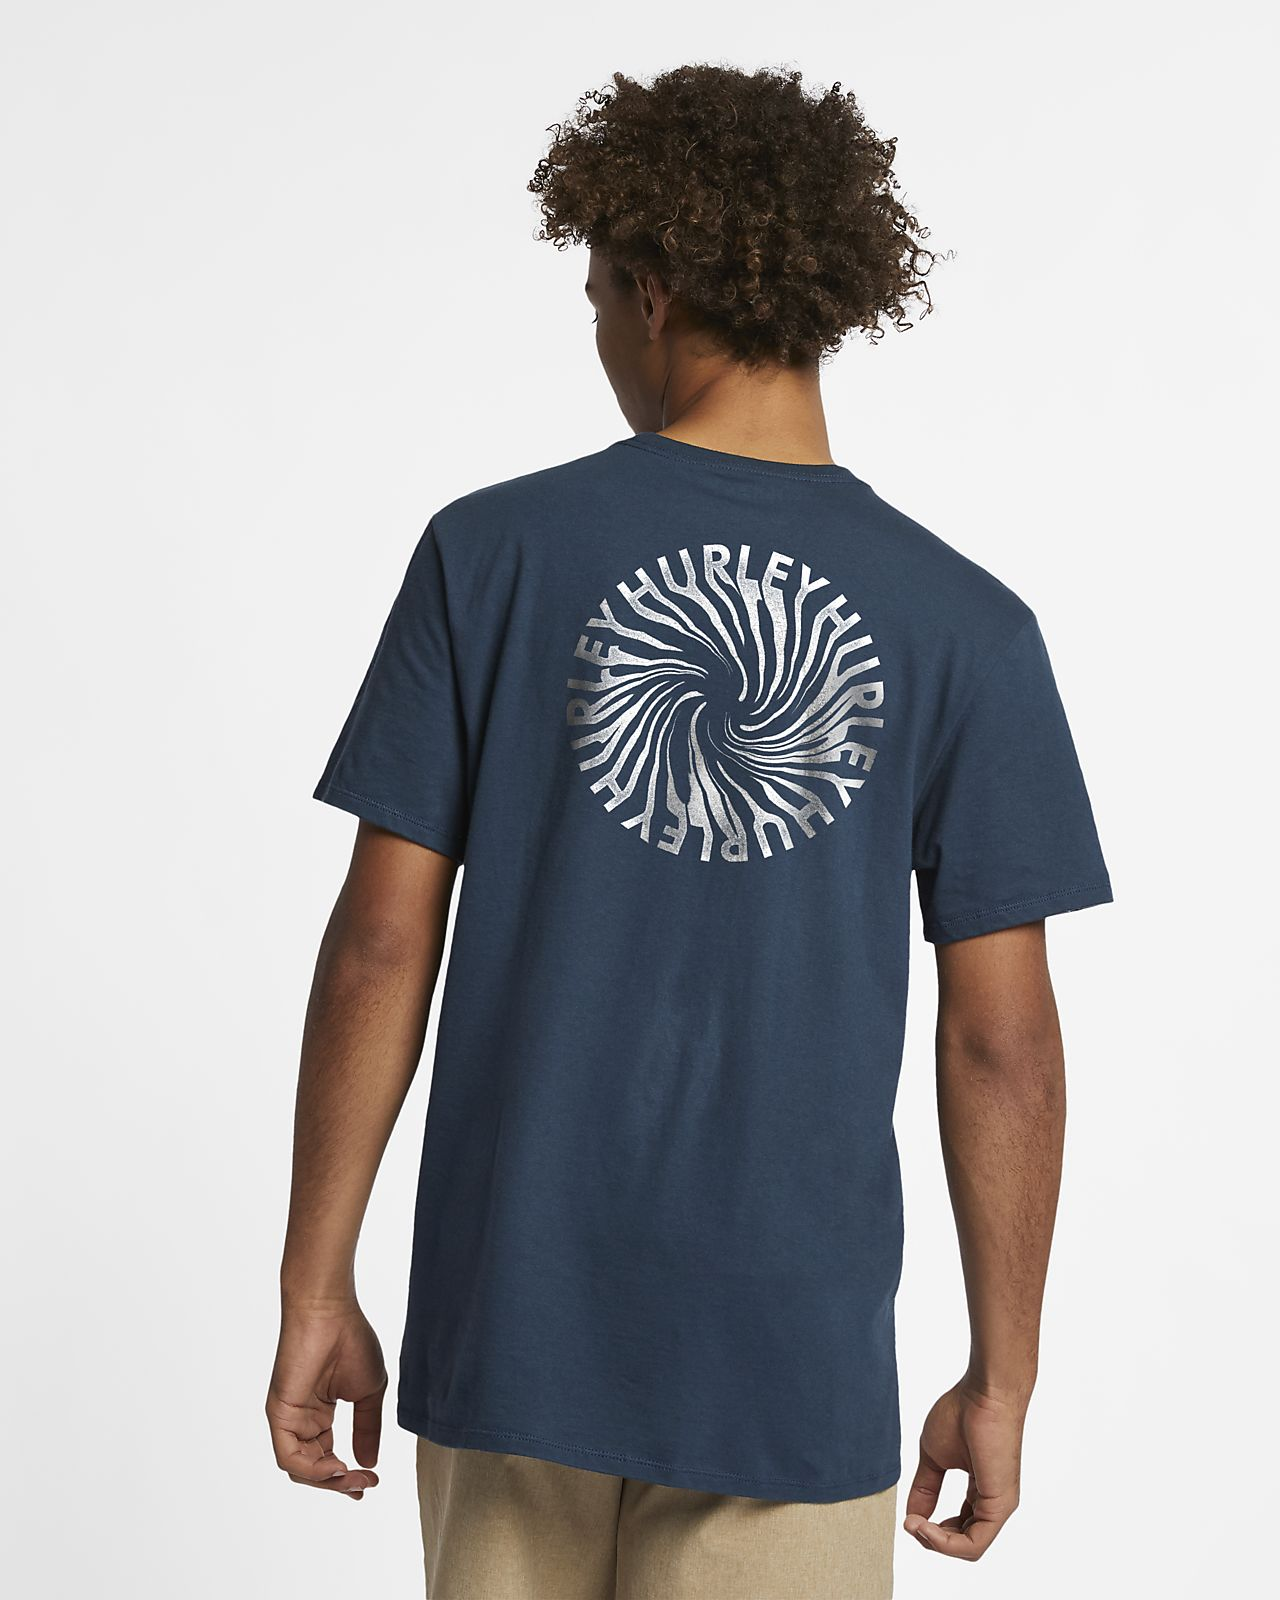 Hurley Premium Wormhole Men's T-Shirt